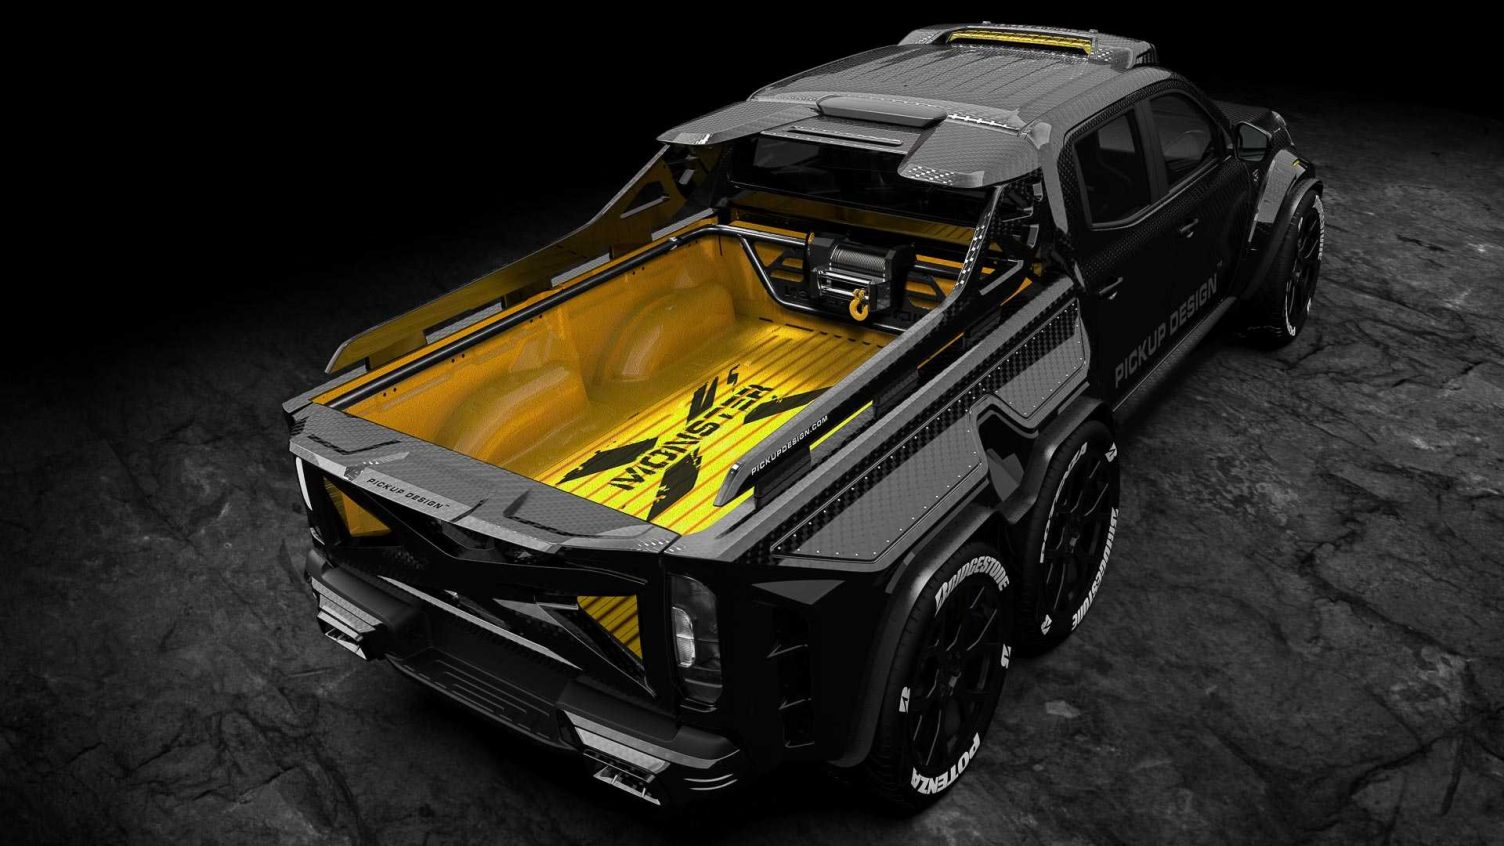 Rear view of the Monster X pickup truck. Image courtesy: Carlex Design